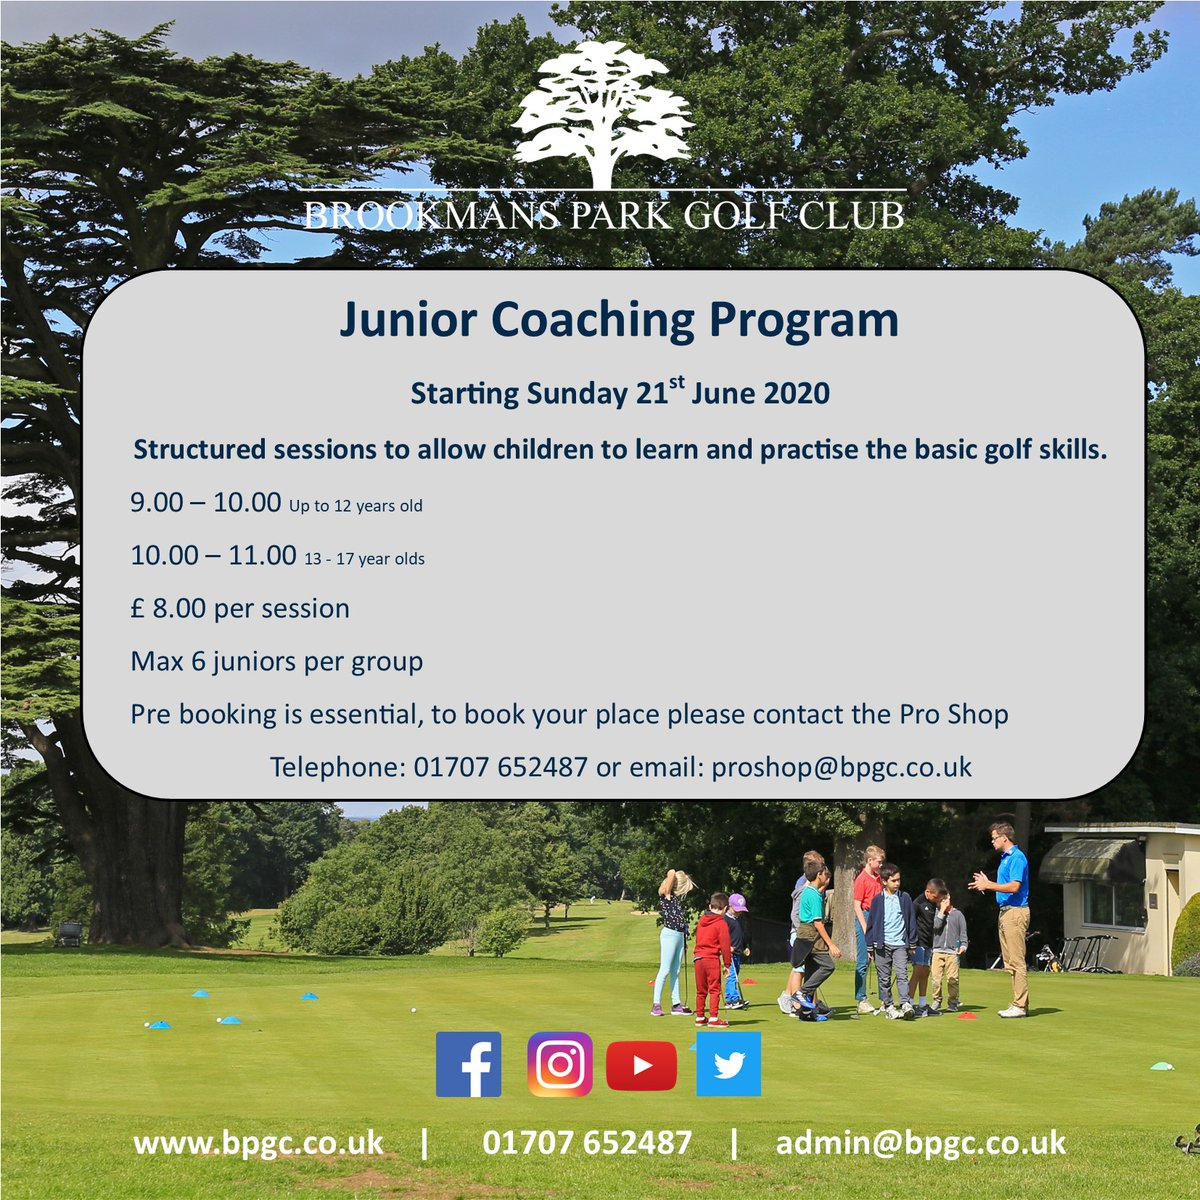 We love inspiring juniors to learn and practise the basic golf skills, there is no better way to get your child outside away from their computers. #juniorgolf #golfing #golfer #kidsgolf #golfcoach #golflessons #brookmansparkgolfclub pic.twitter.com/RNal6dztfl